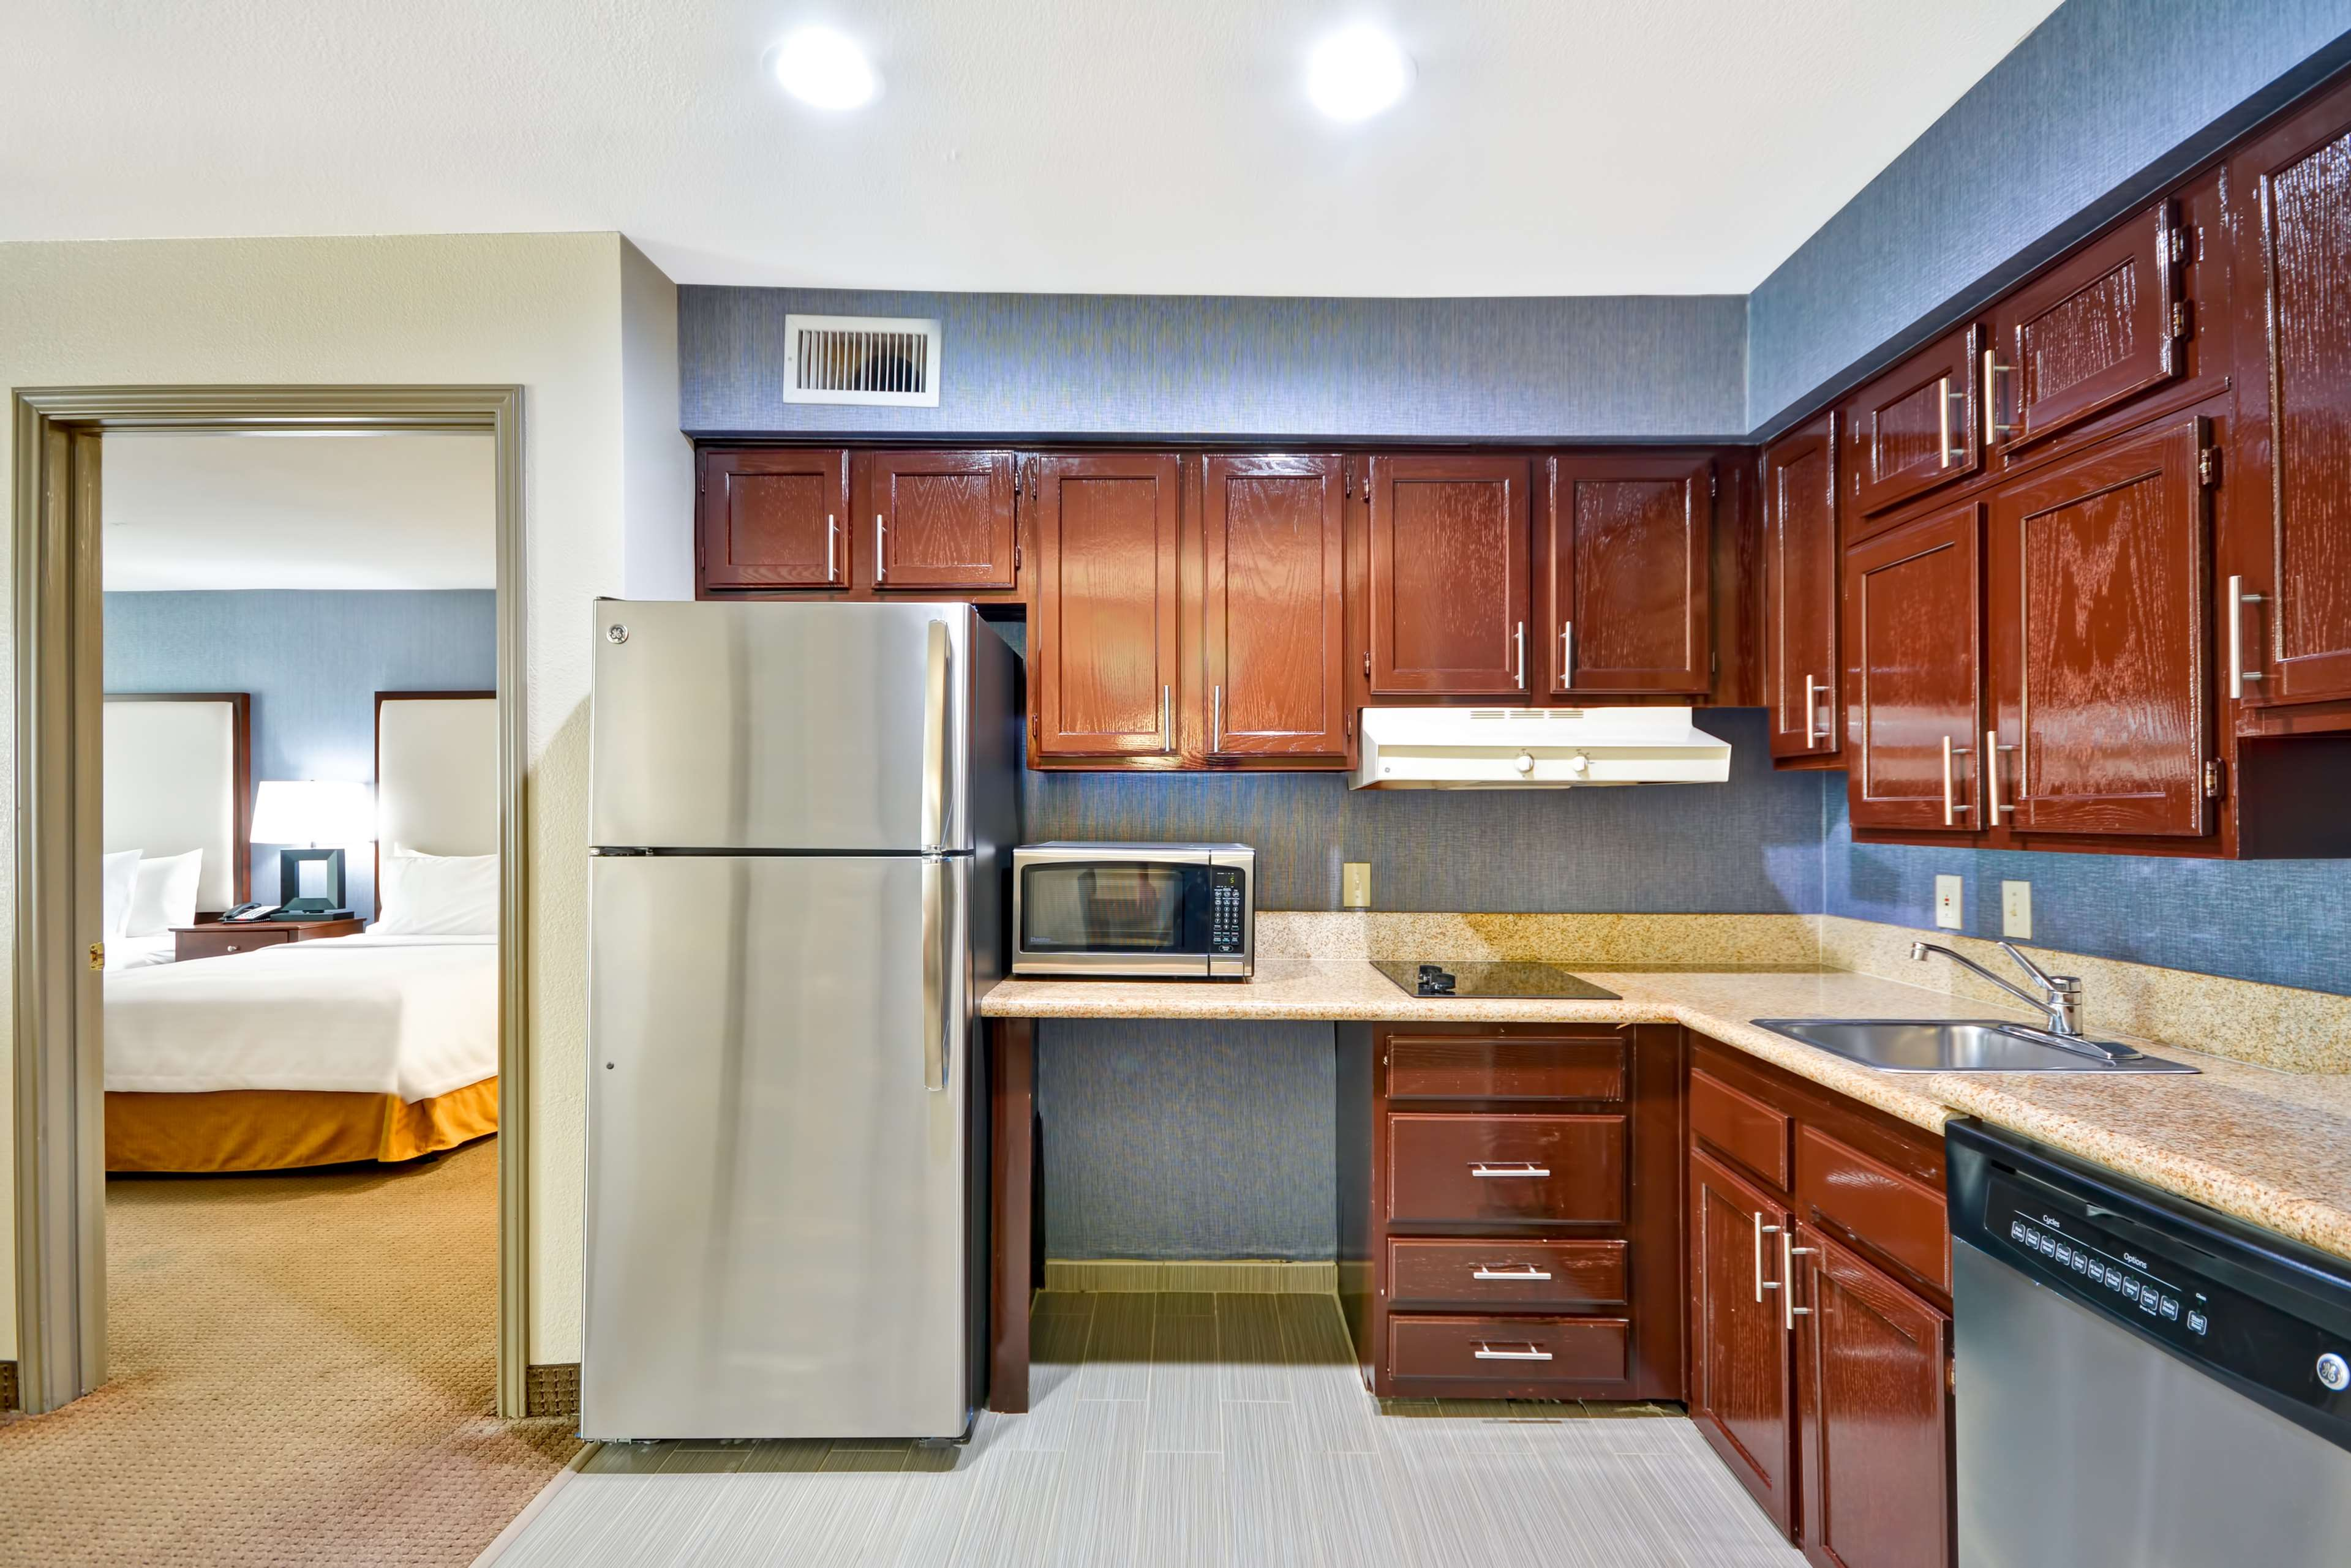 Homewood Suites by Hilton Dallas-Lewisville image 21